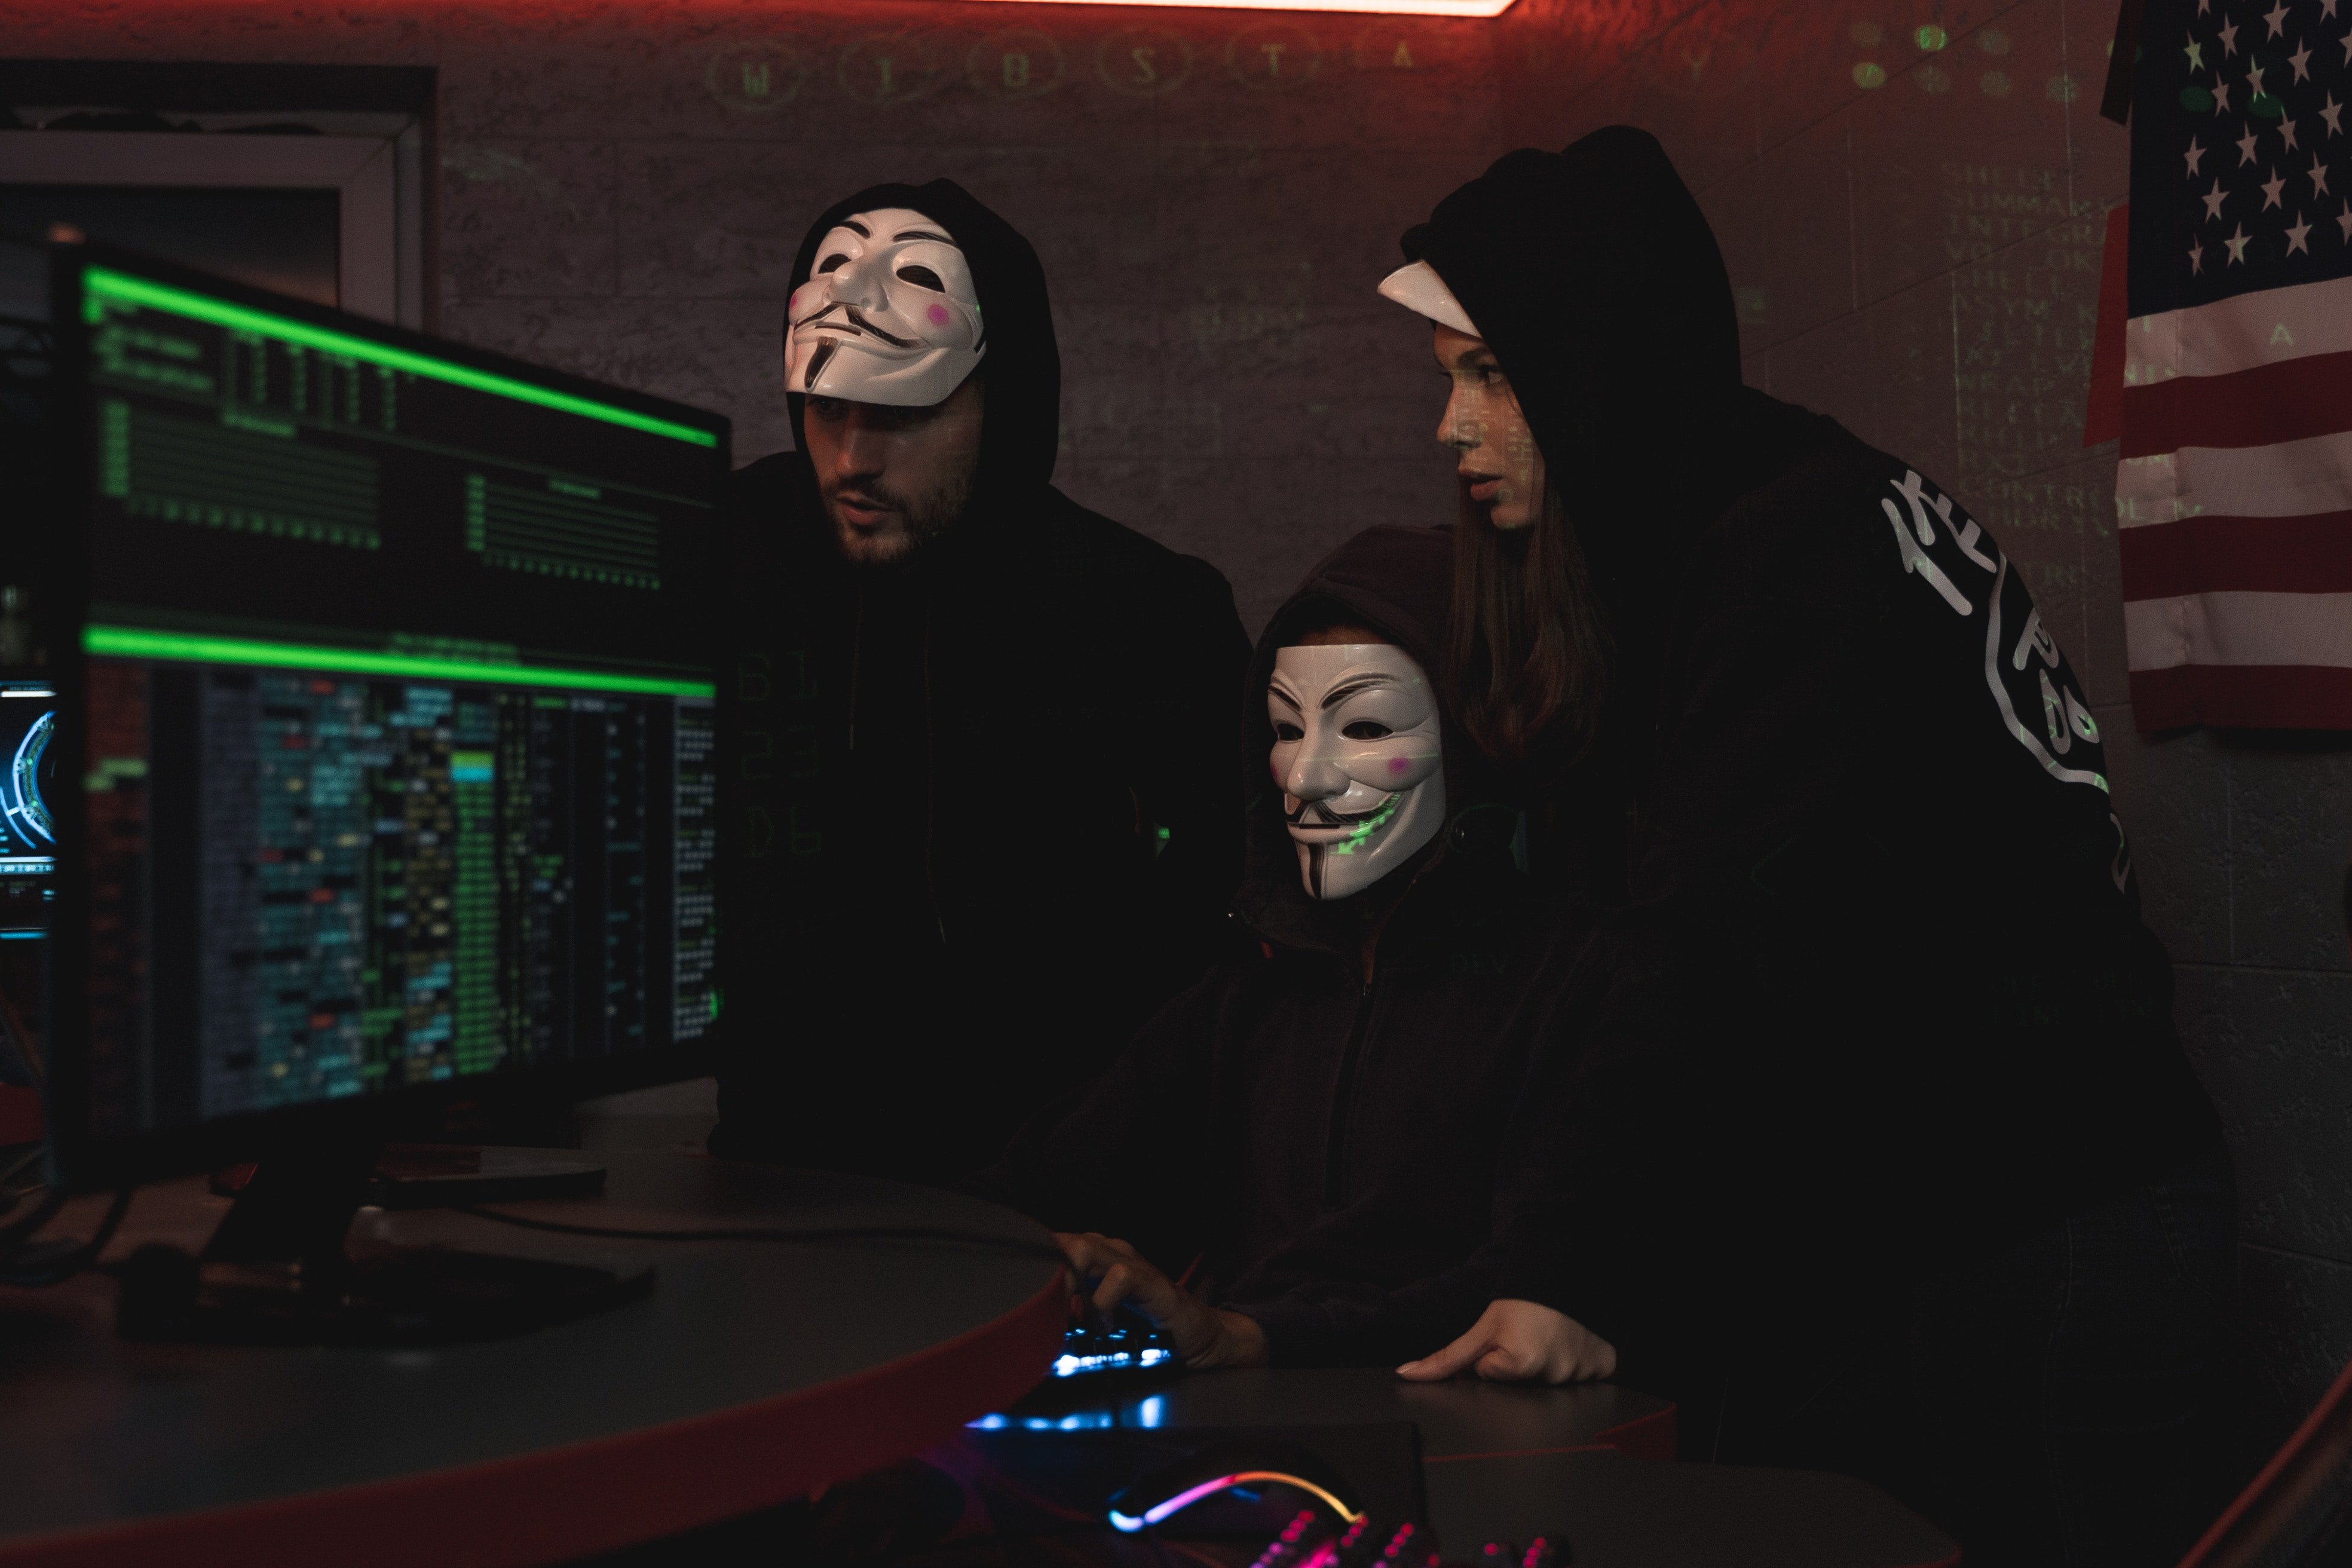 Hackers in V masks look at a monitor together.